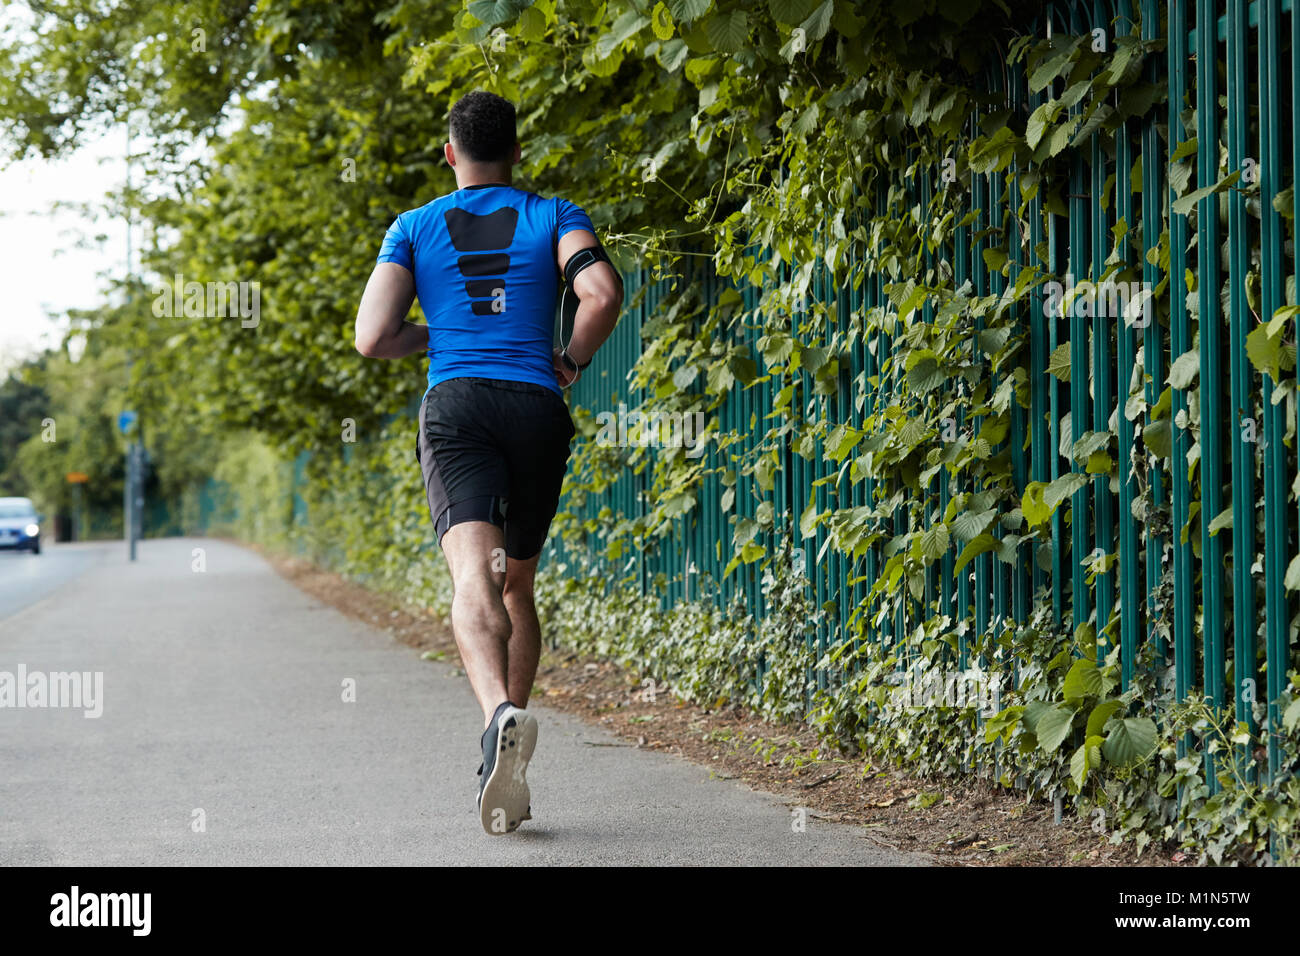 Back view of young male athlete running in the street - Stock Image